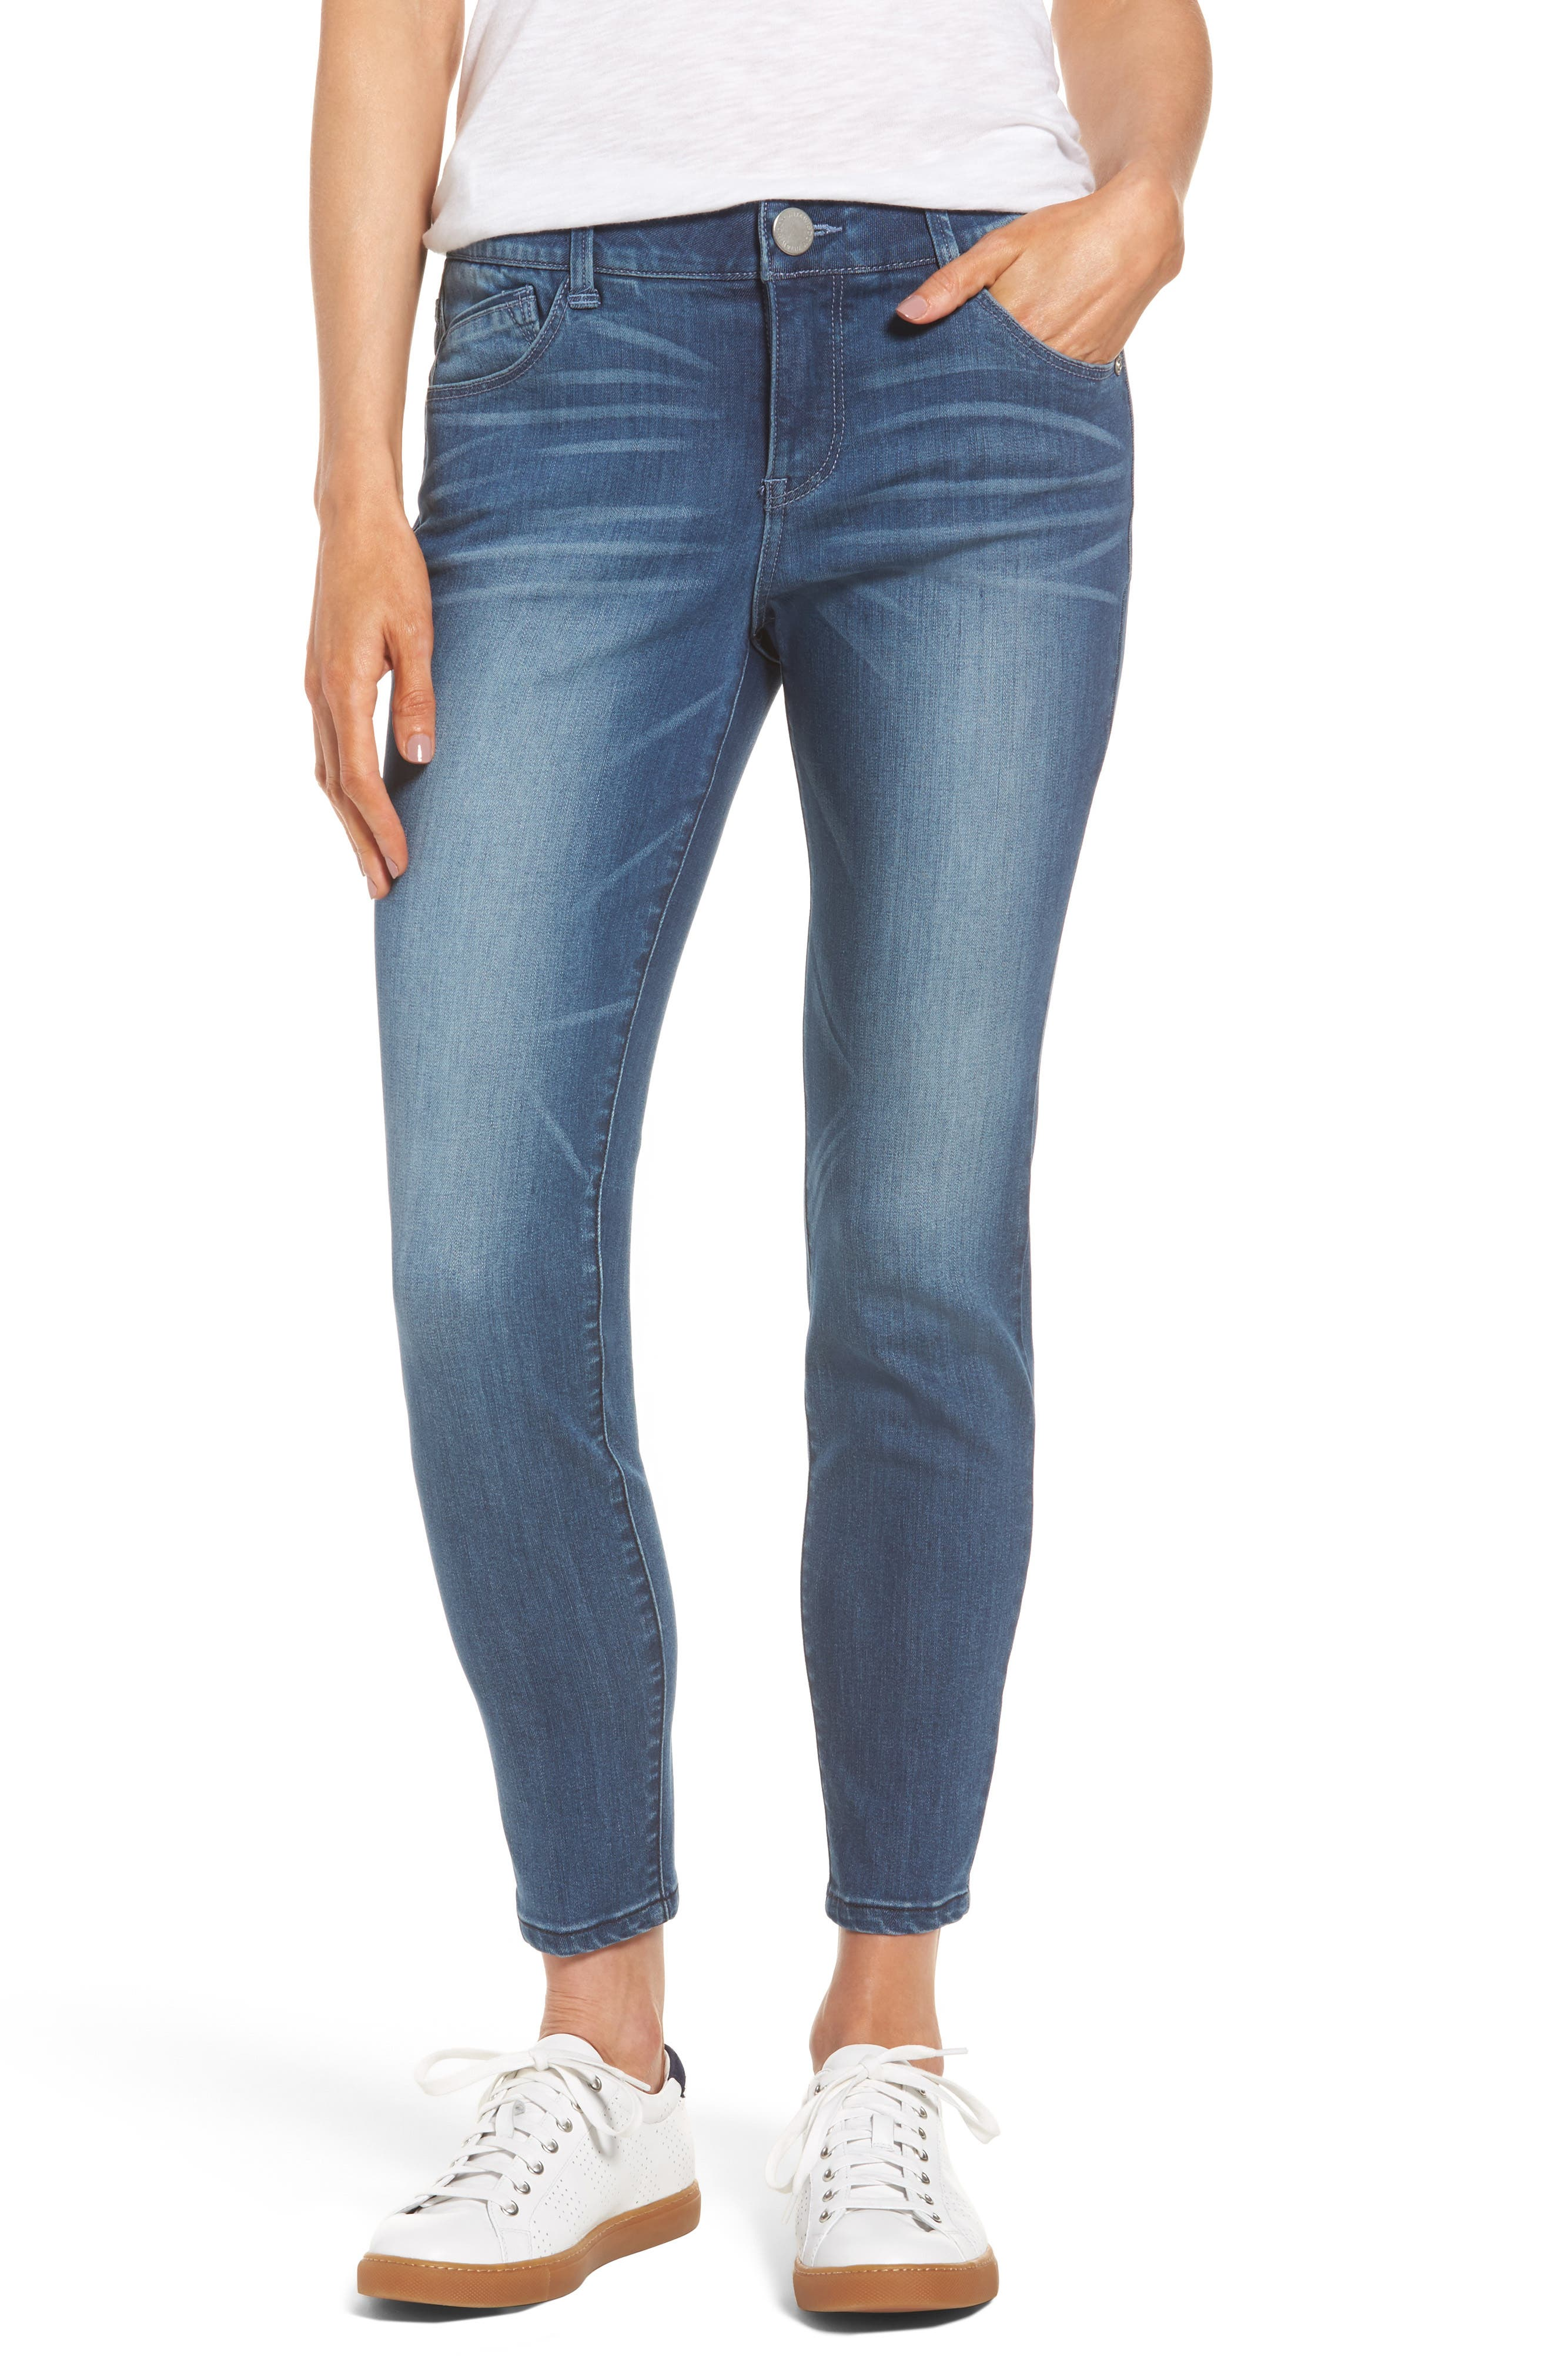 Wit & Wisdom Ab-solution Stretch Ankle Skinny Jeans (Regular & Petite) (Nordstrom Exclusive)